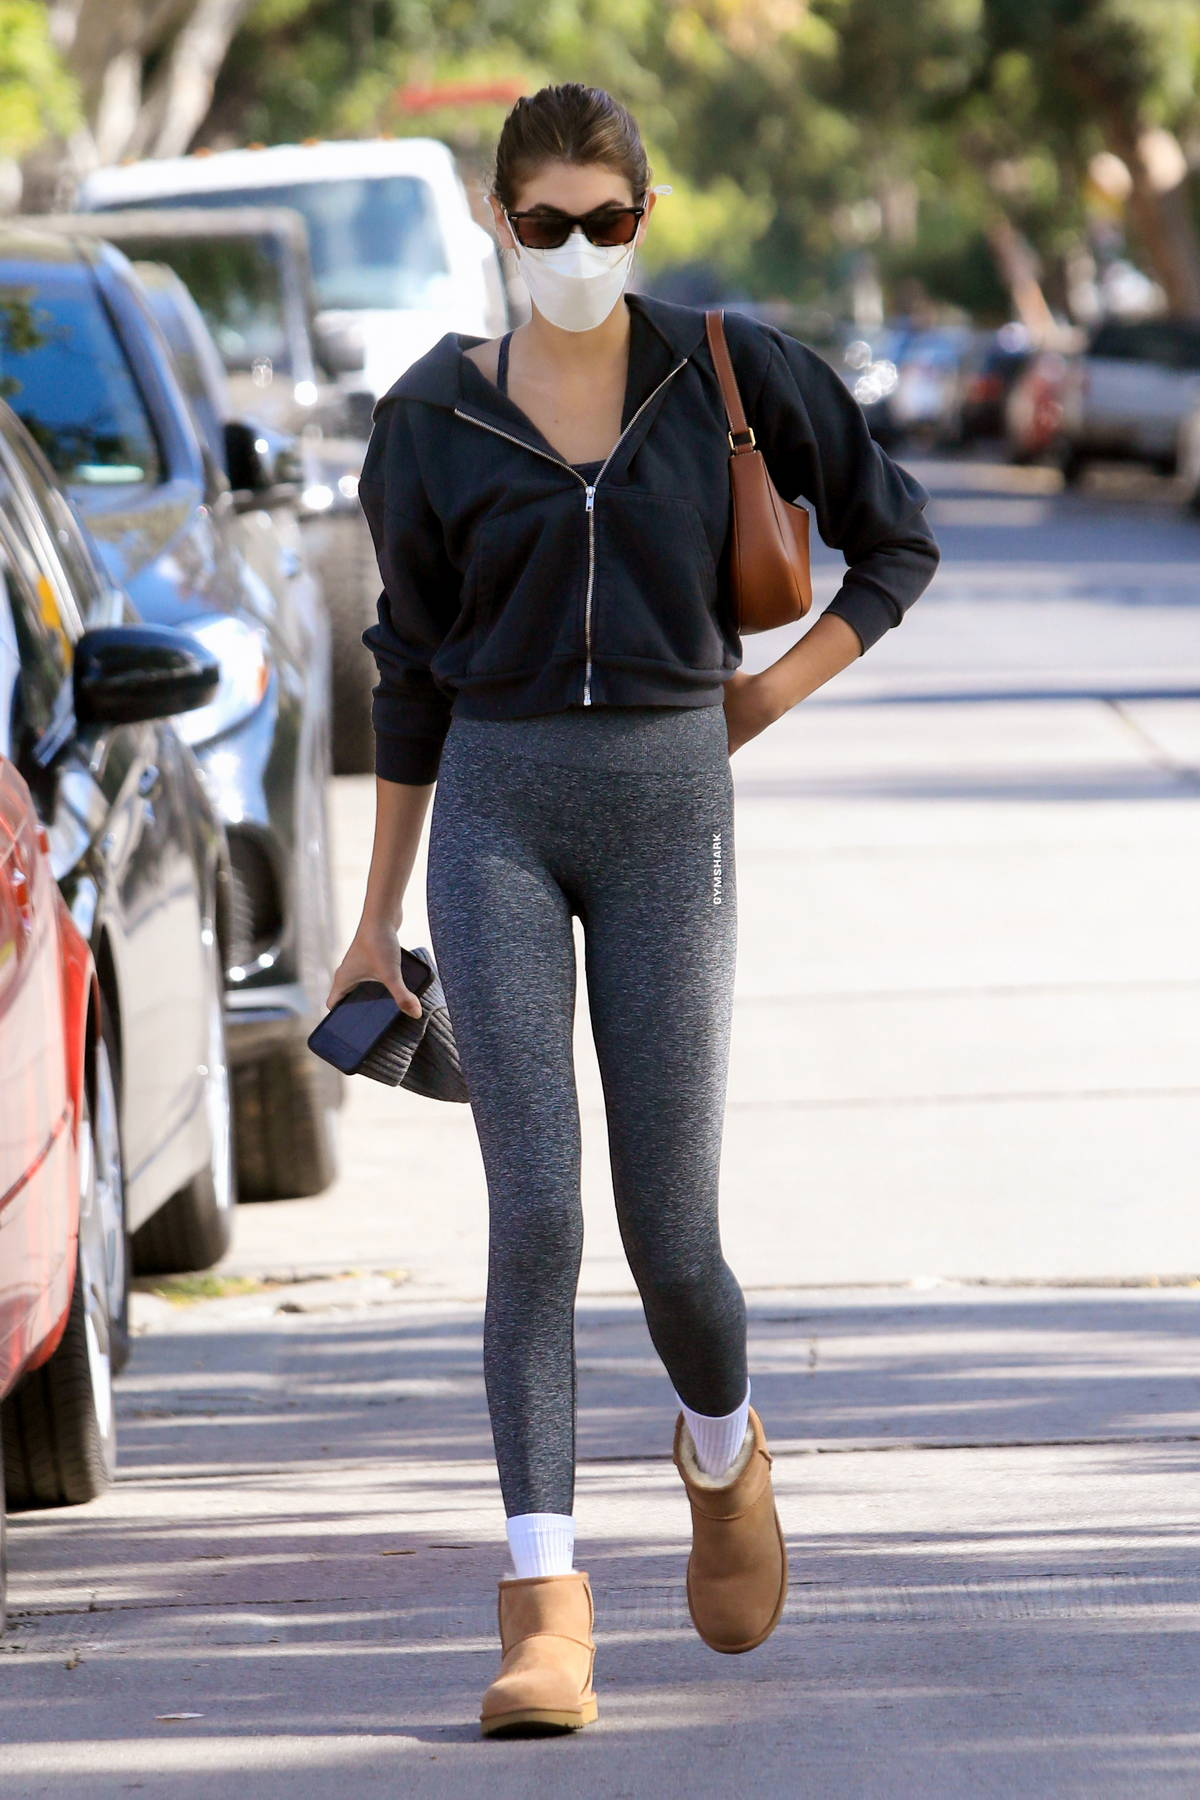 Kaia Gerber flaunts her long legs in heather-grey leggings as she hits her morning Pilates class in West Hollywood, California